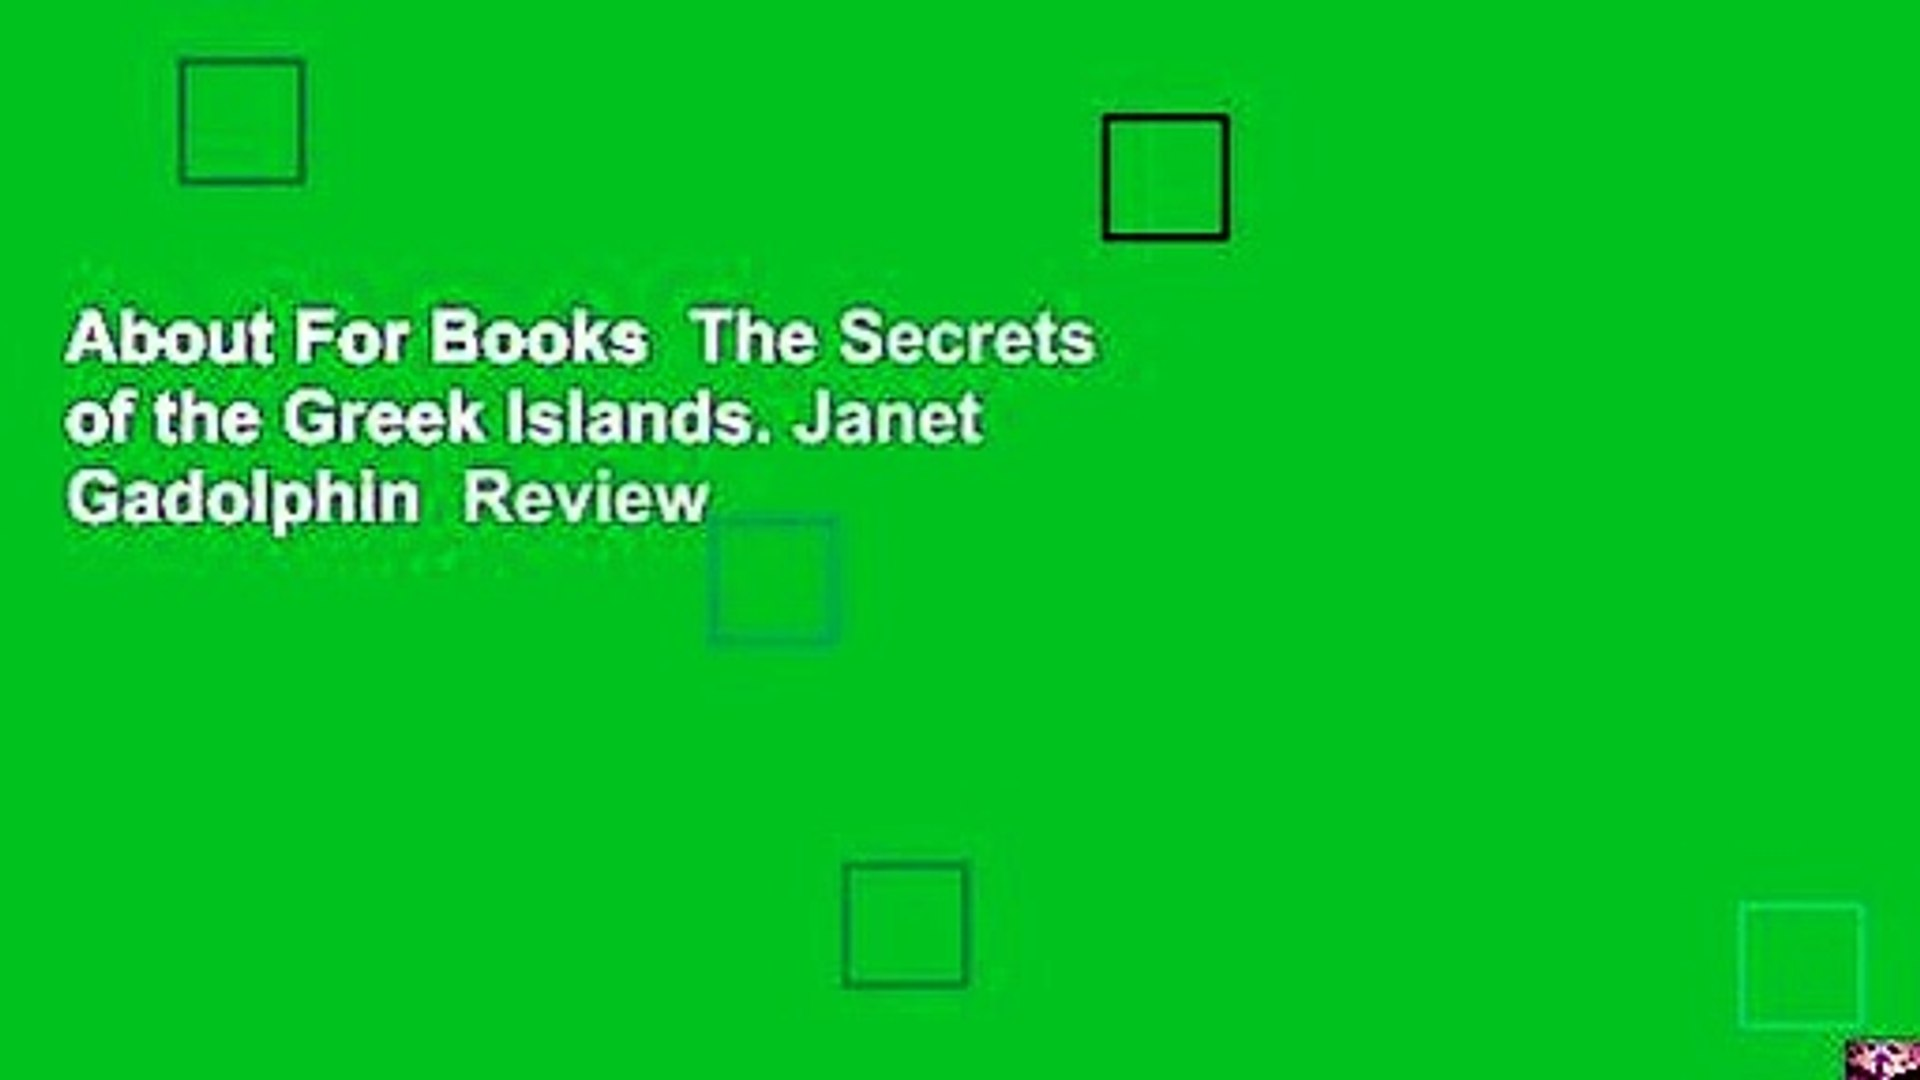 About For Books  The Secrets of the Greek Islands. Janet Gadolphin  Review